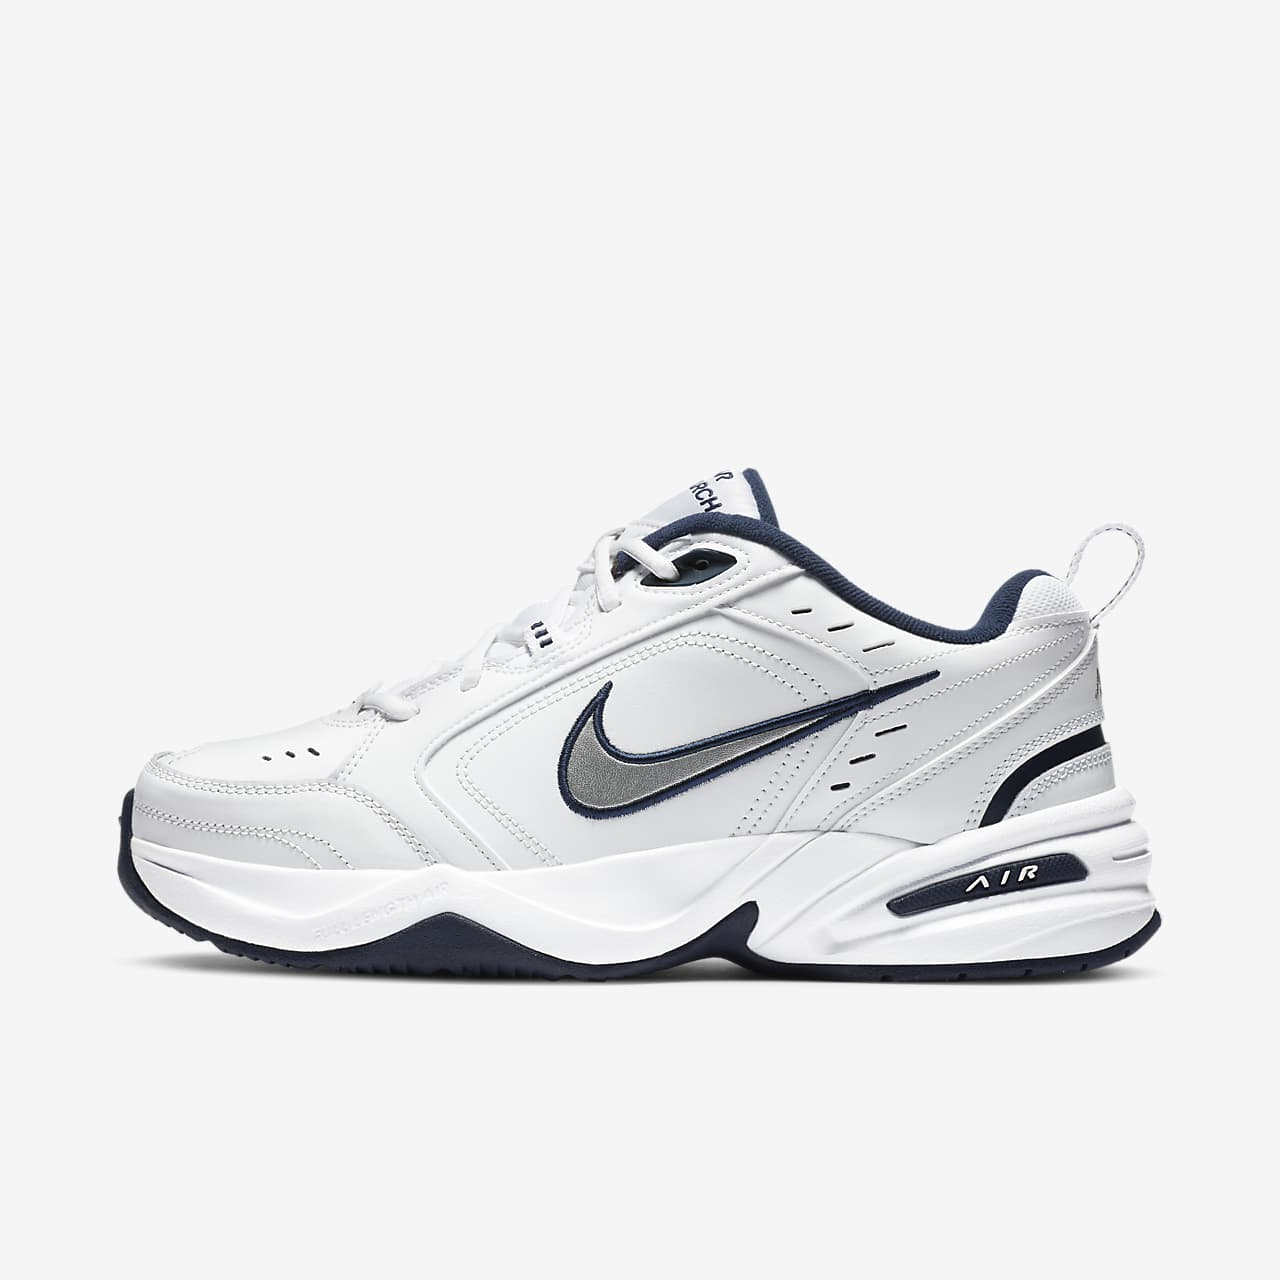 premium selection 7fe3b 9d0d7 Nike Air Monarch IV